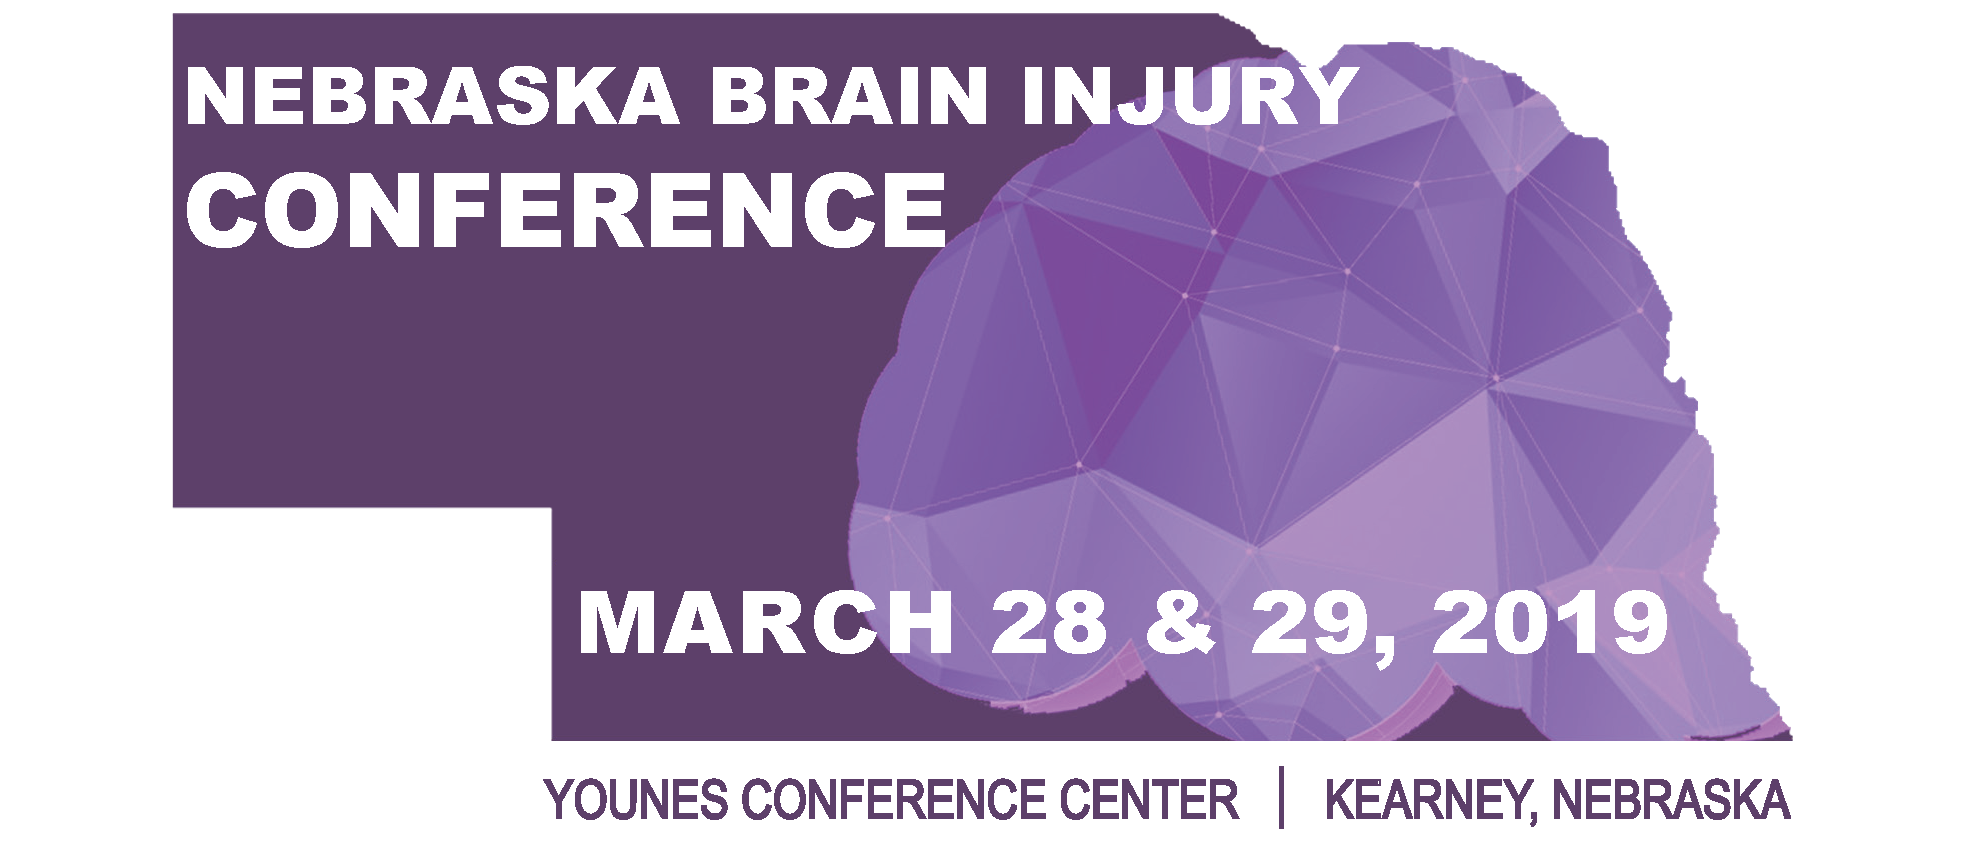 13th Nebraska Brain Injury Conference - REGISTER NOW!